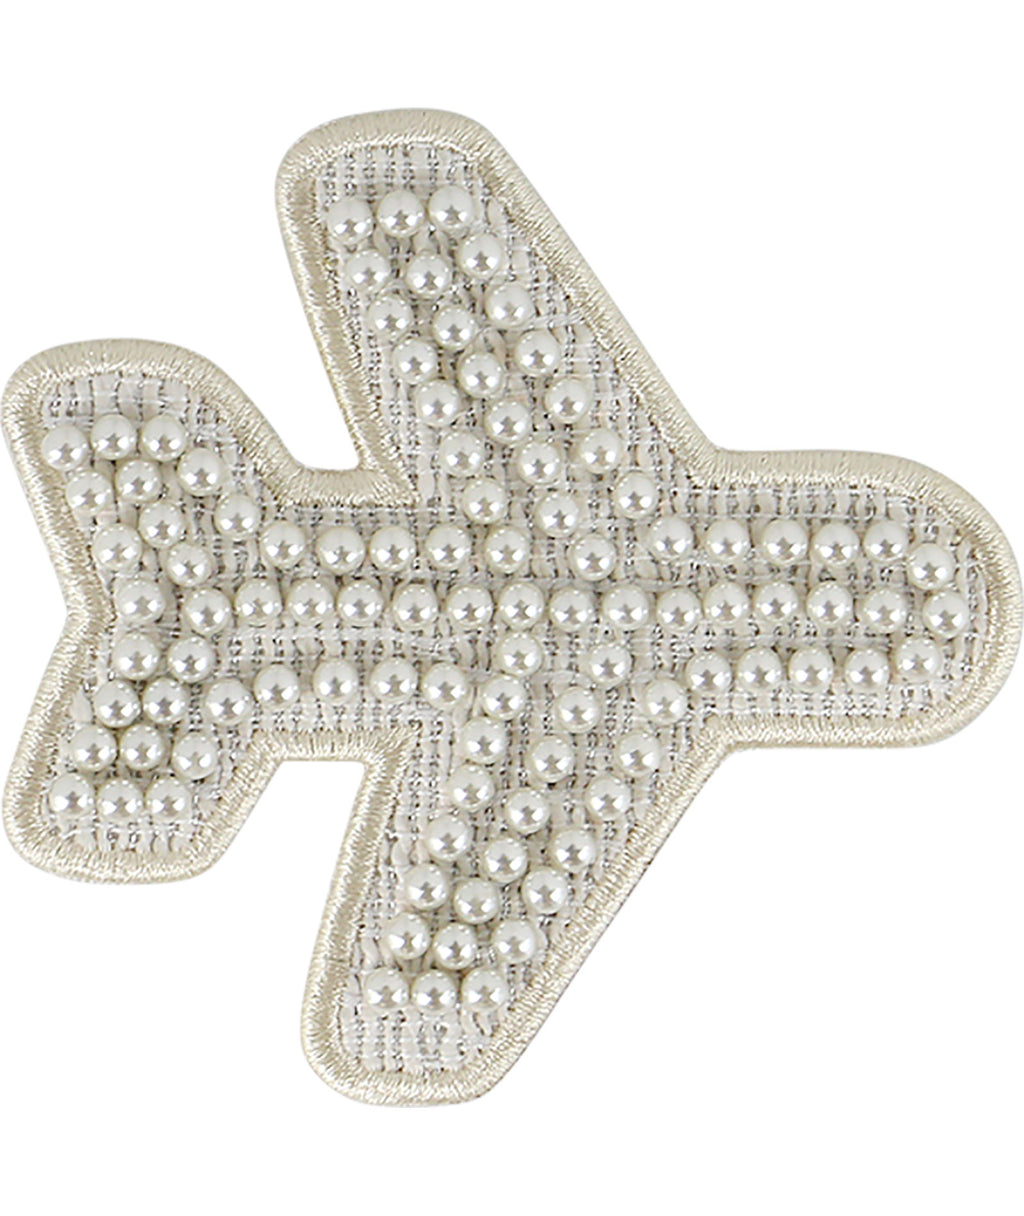 Stoney Clover Jumbo Cozy Pearl Airplane Patch